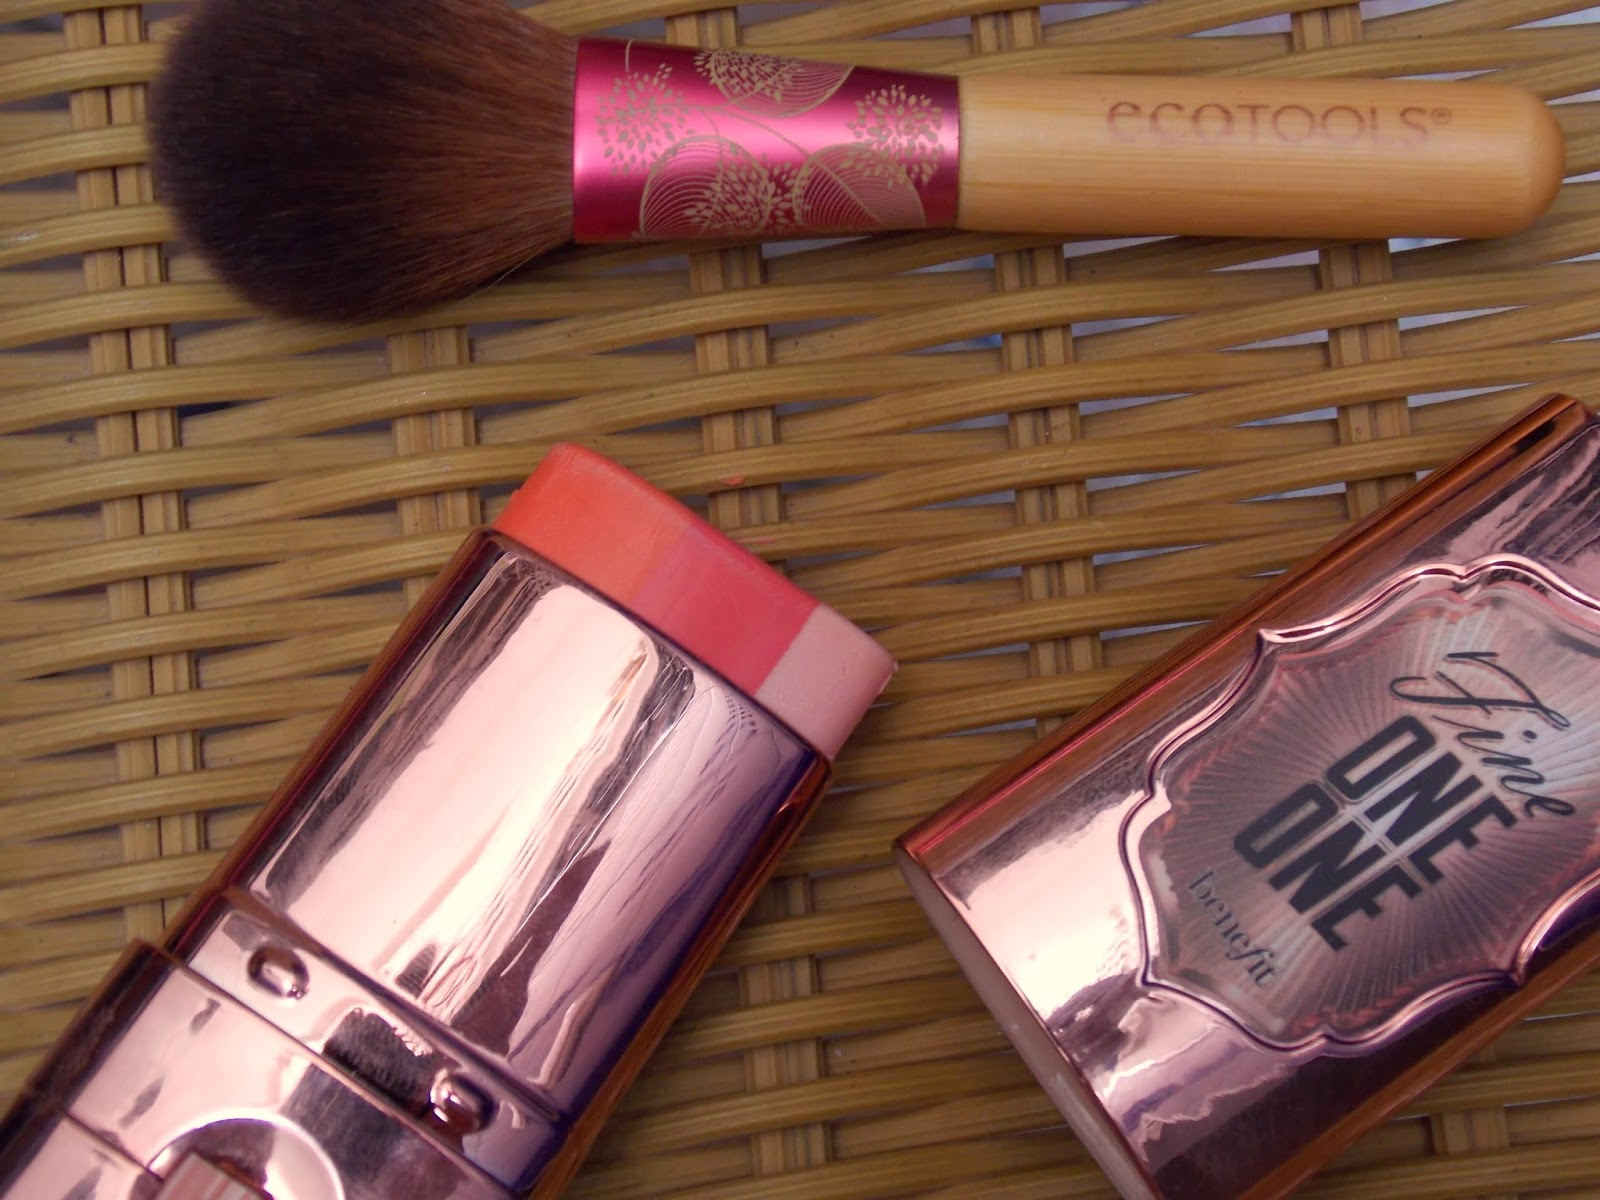 Beauty, Real Techniques Blush Brush, Sleek Blush Pomegranate, MUA Undress your Skin Highlighter, Benefit Coralista, Benefit Fine One One, Spring Blushes, Spring Make Up Look,